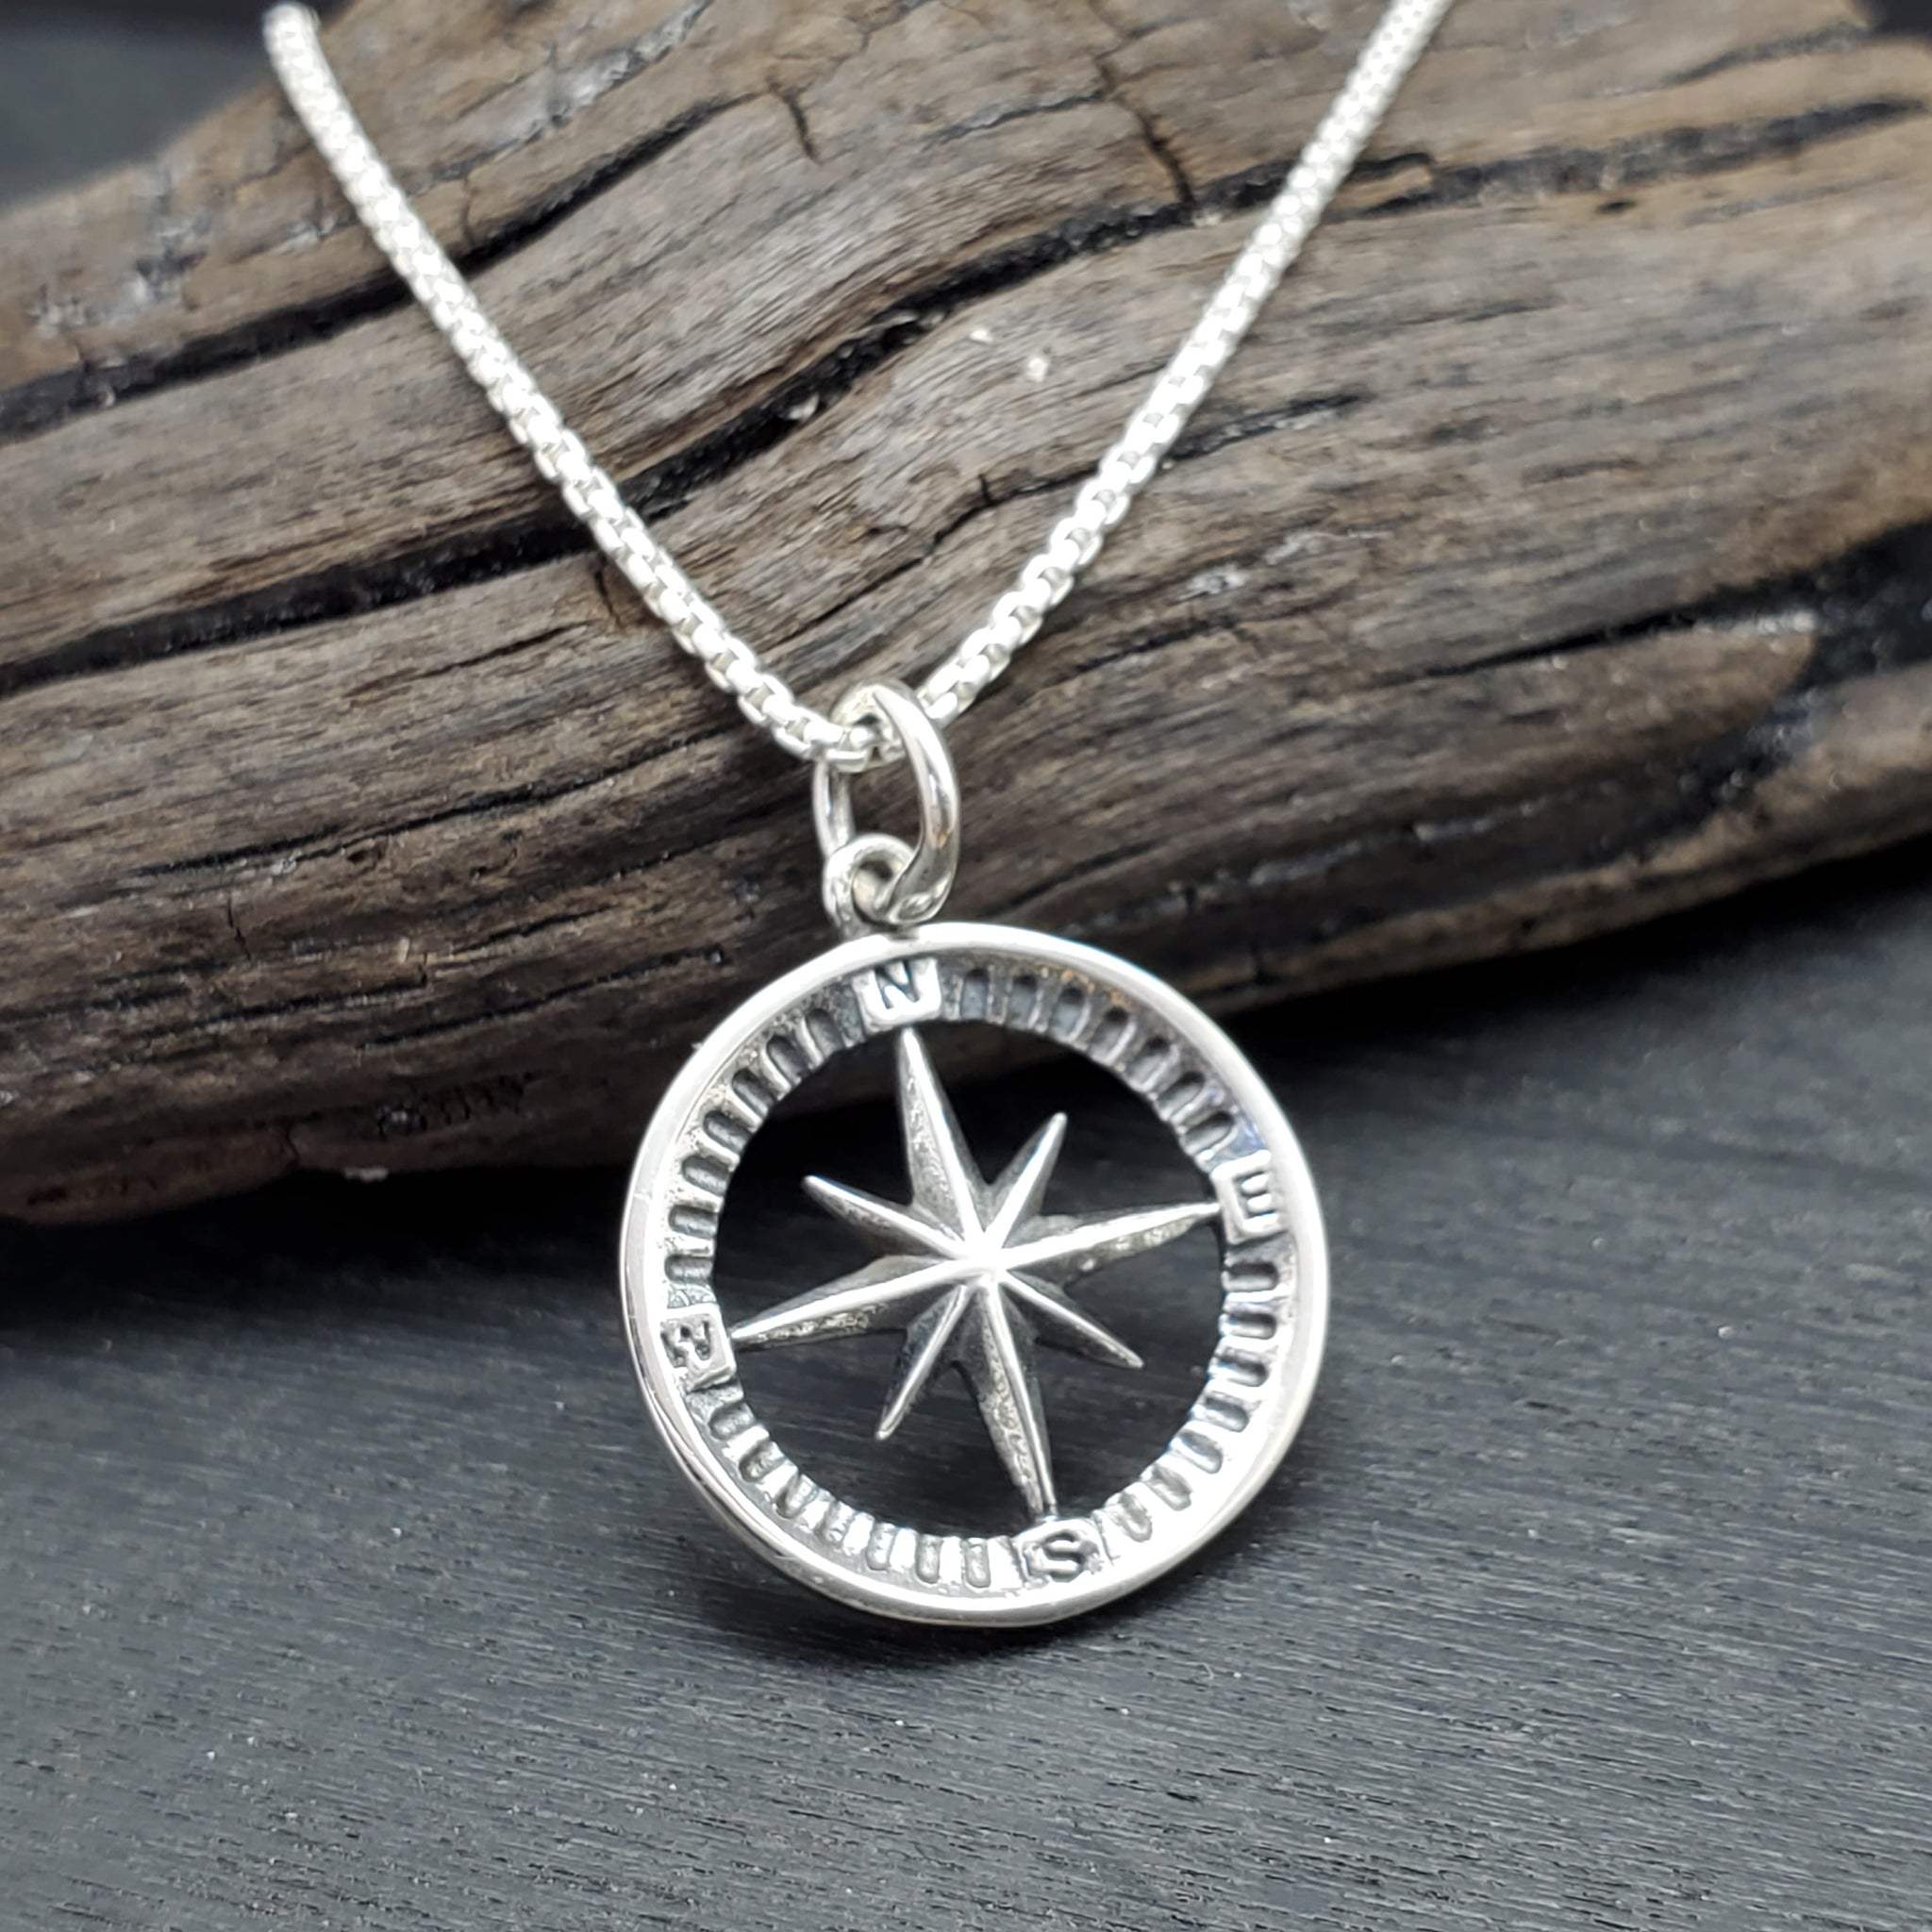 The Isle of Shoals Necklace